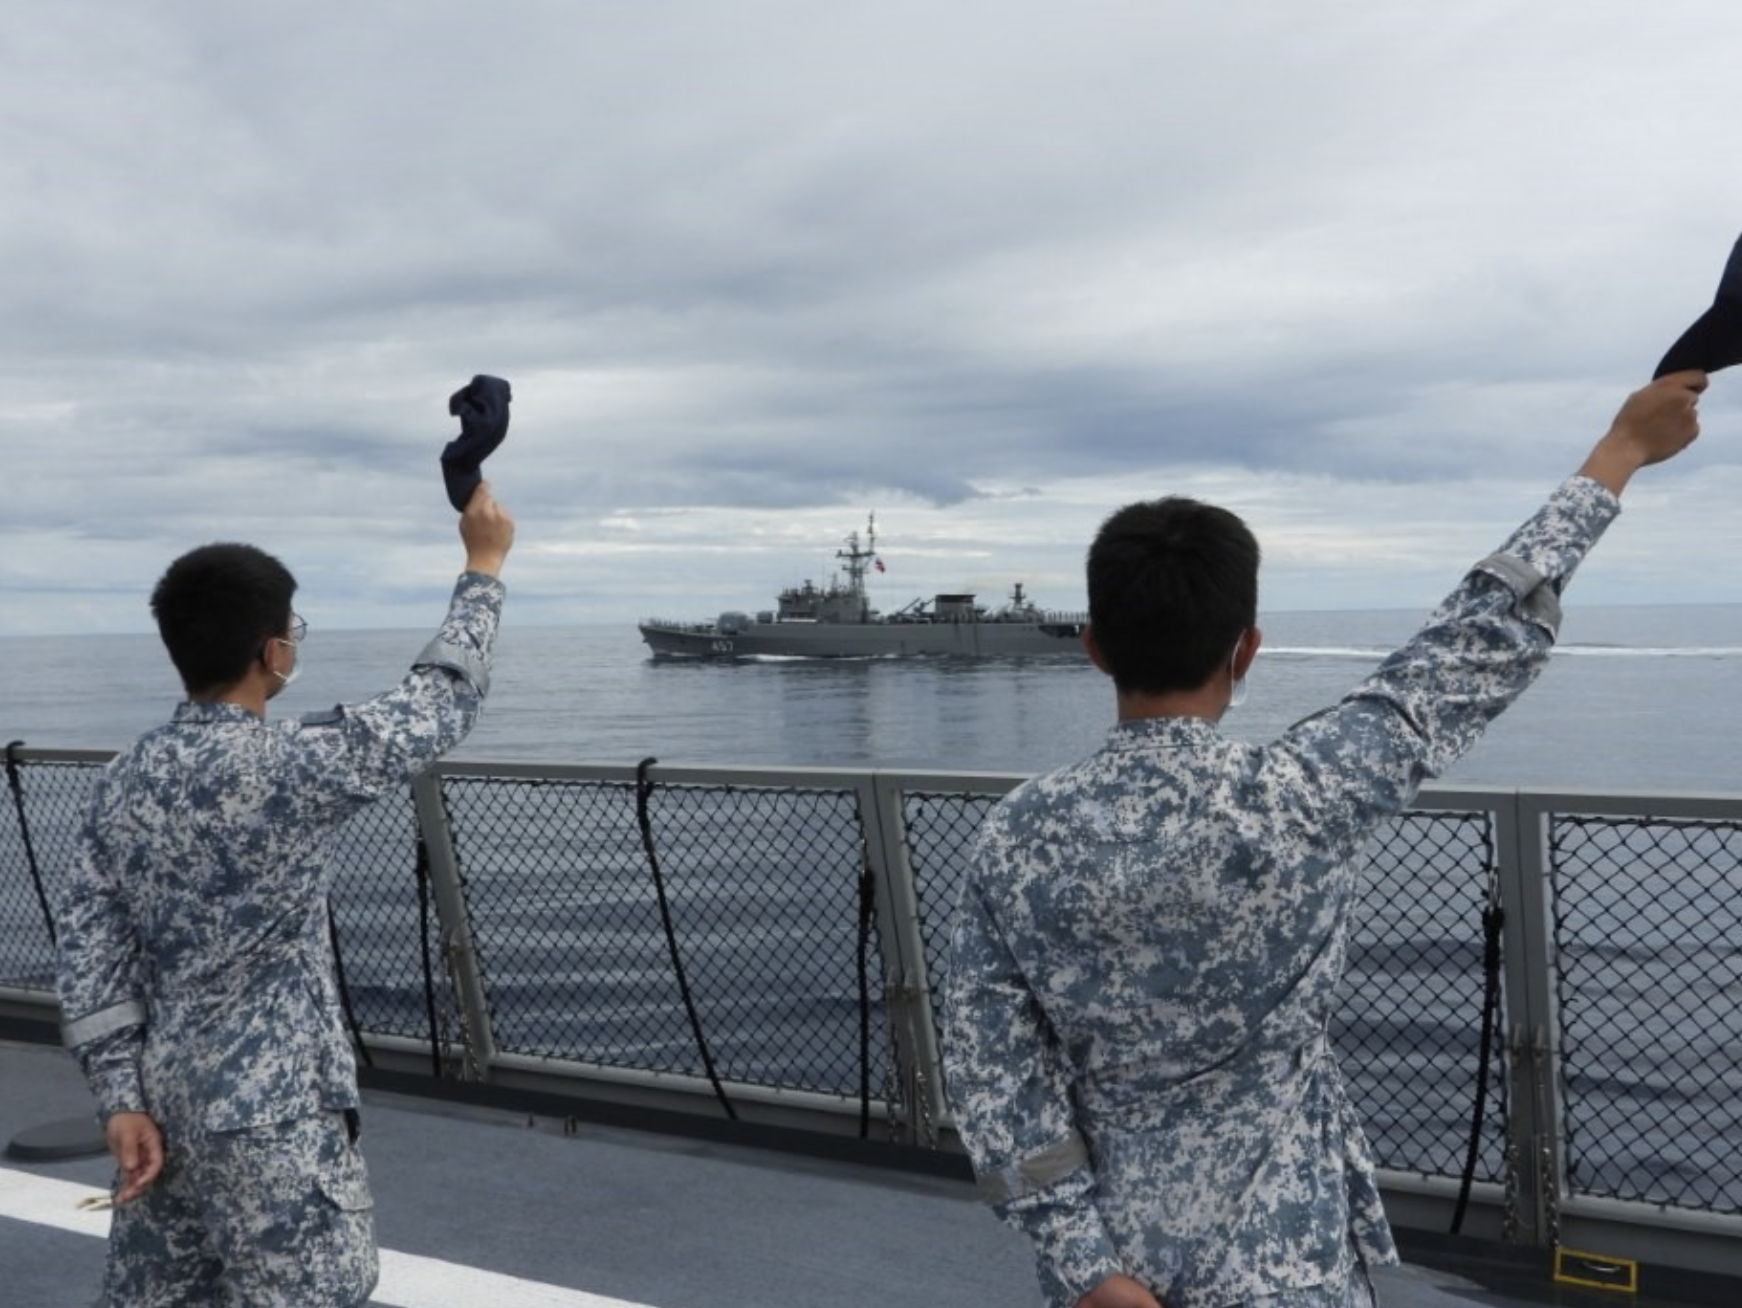 Republic of Singapore Navy sailors lining the deck for the sailpast to conclude the exercise. Photo courtesy: Mindef